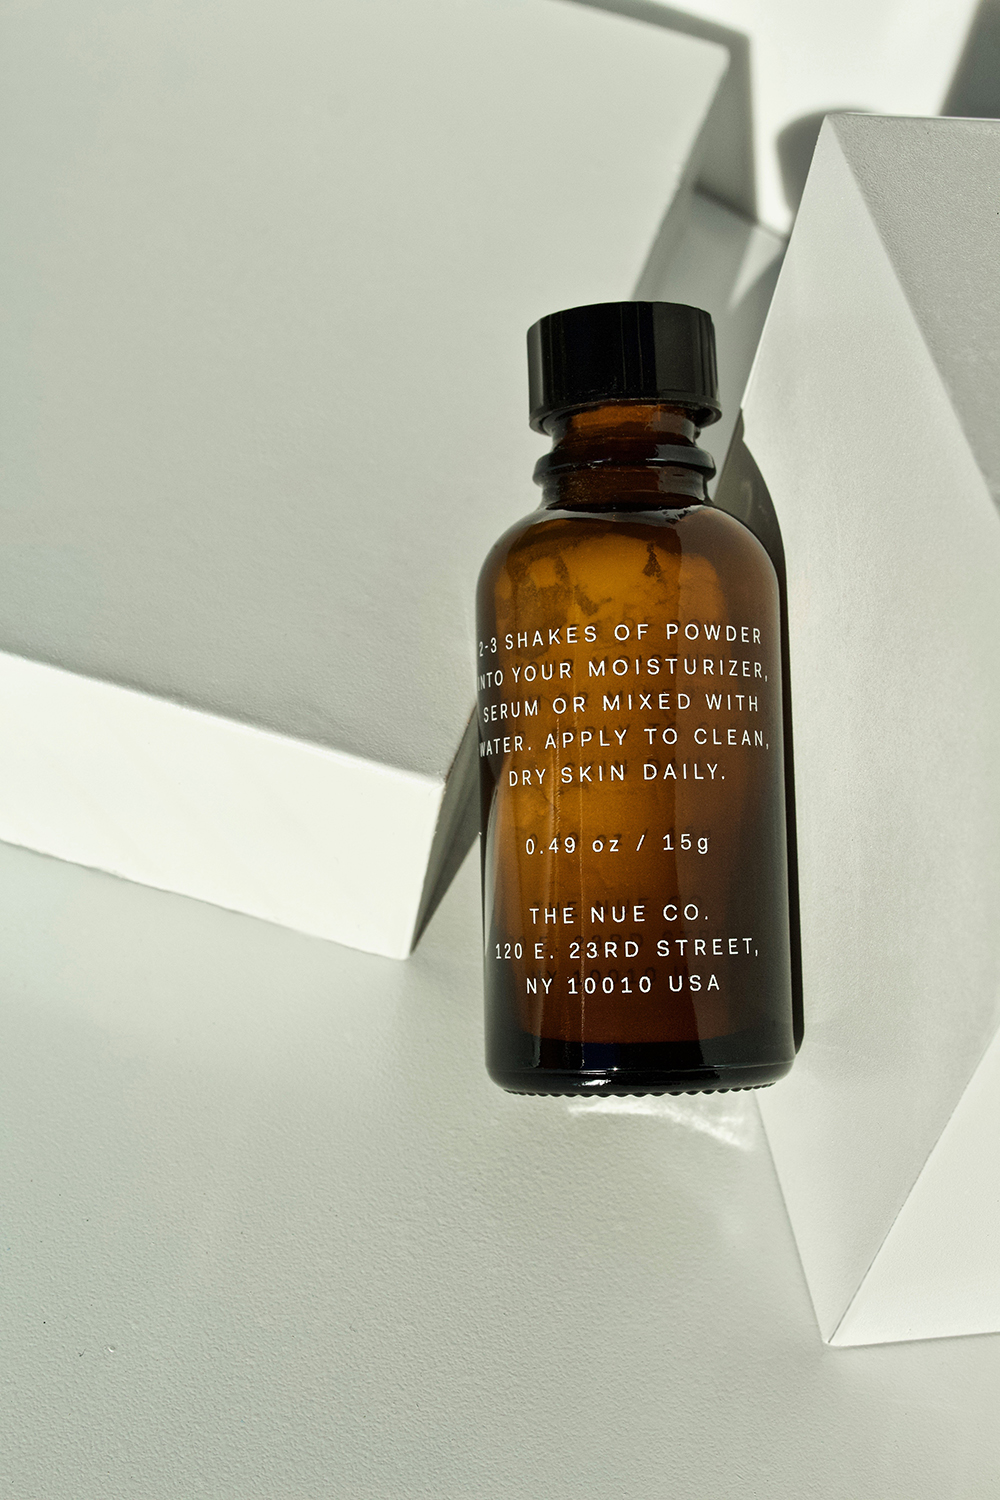 the nue co topical-c review